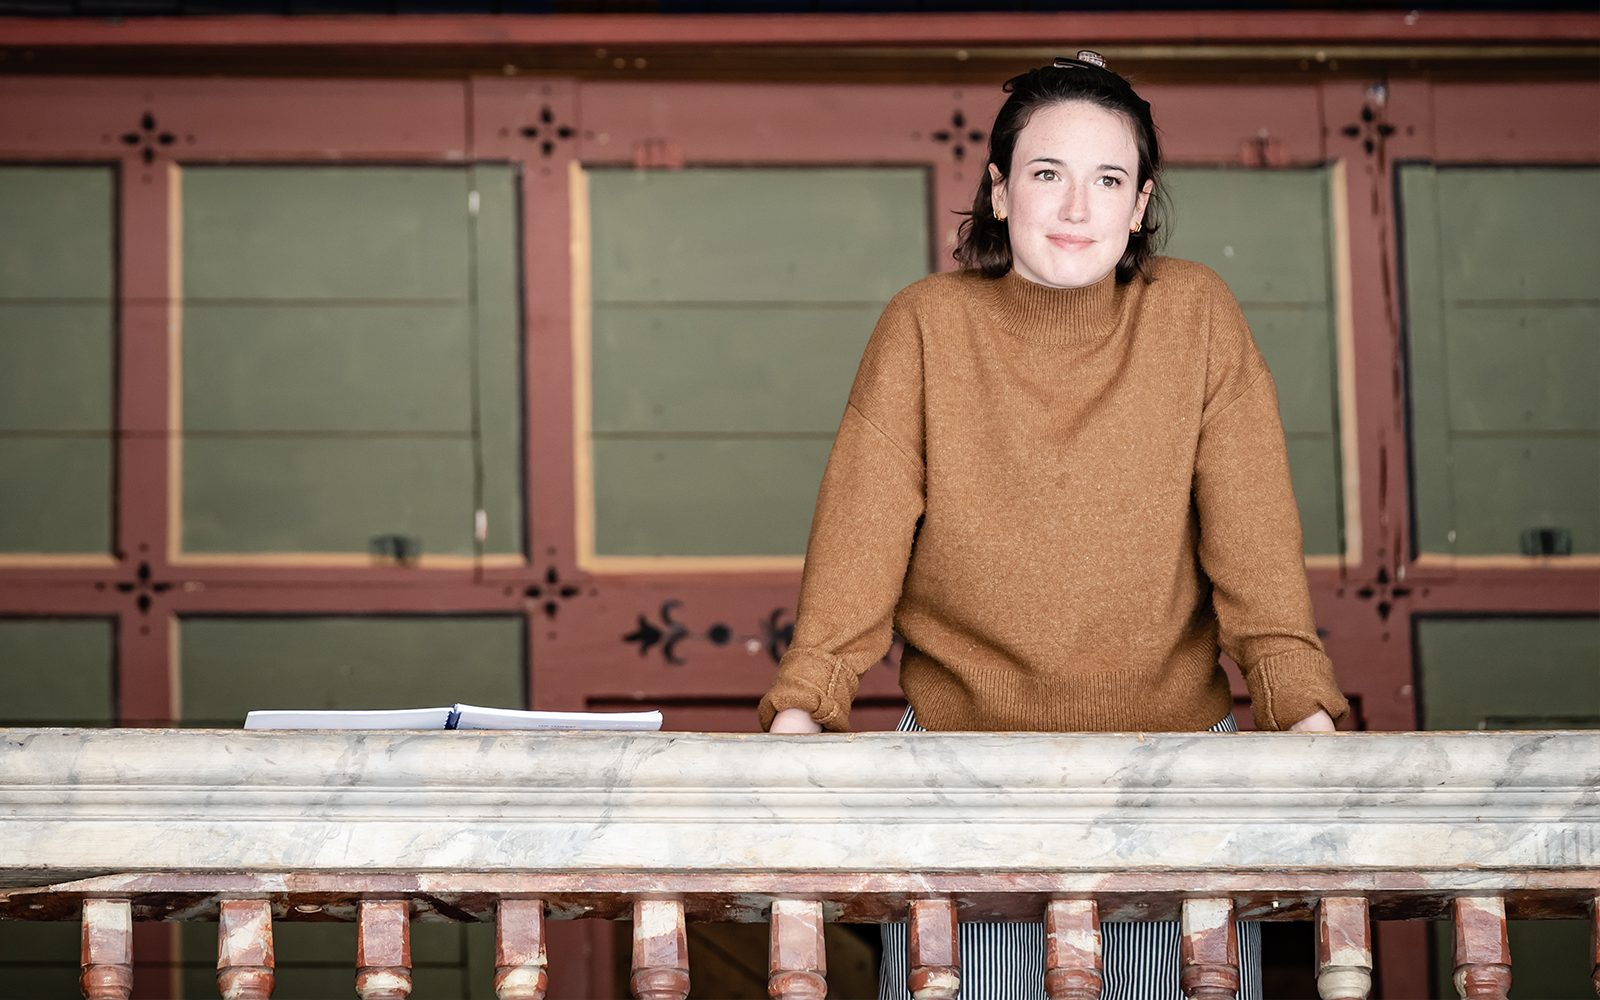 An actor on a balcony wears a brown jumper and looks onwards to something in the distance